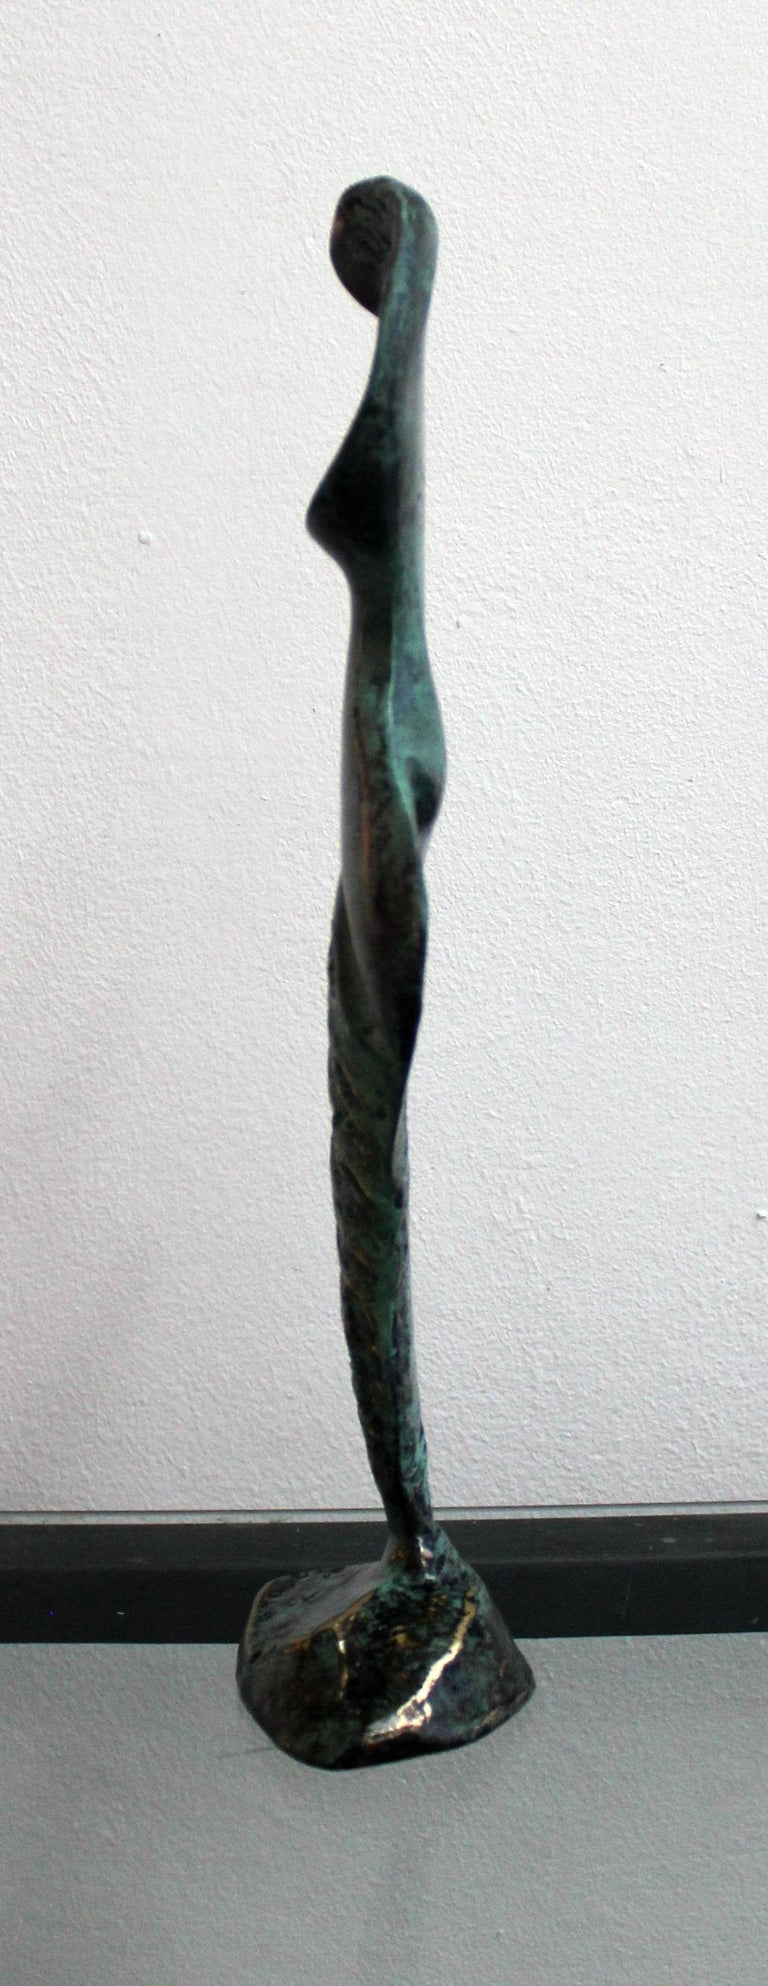 Dame - XXI Century, Contemporary Bronze Sculpture, Figurative, Nude, Abstract - Gold Figurative Sculpture by Stanisław Wysocki